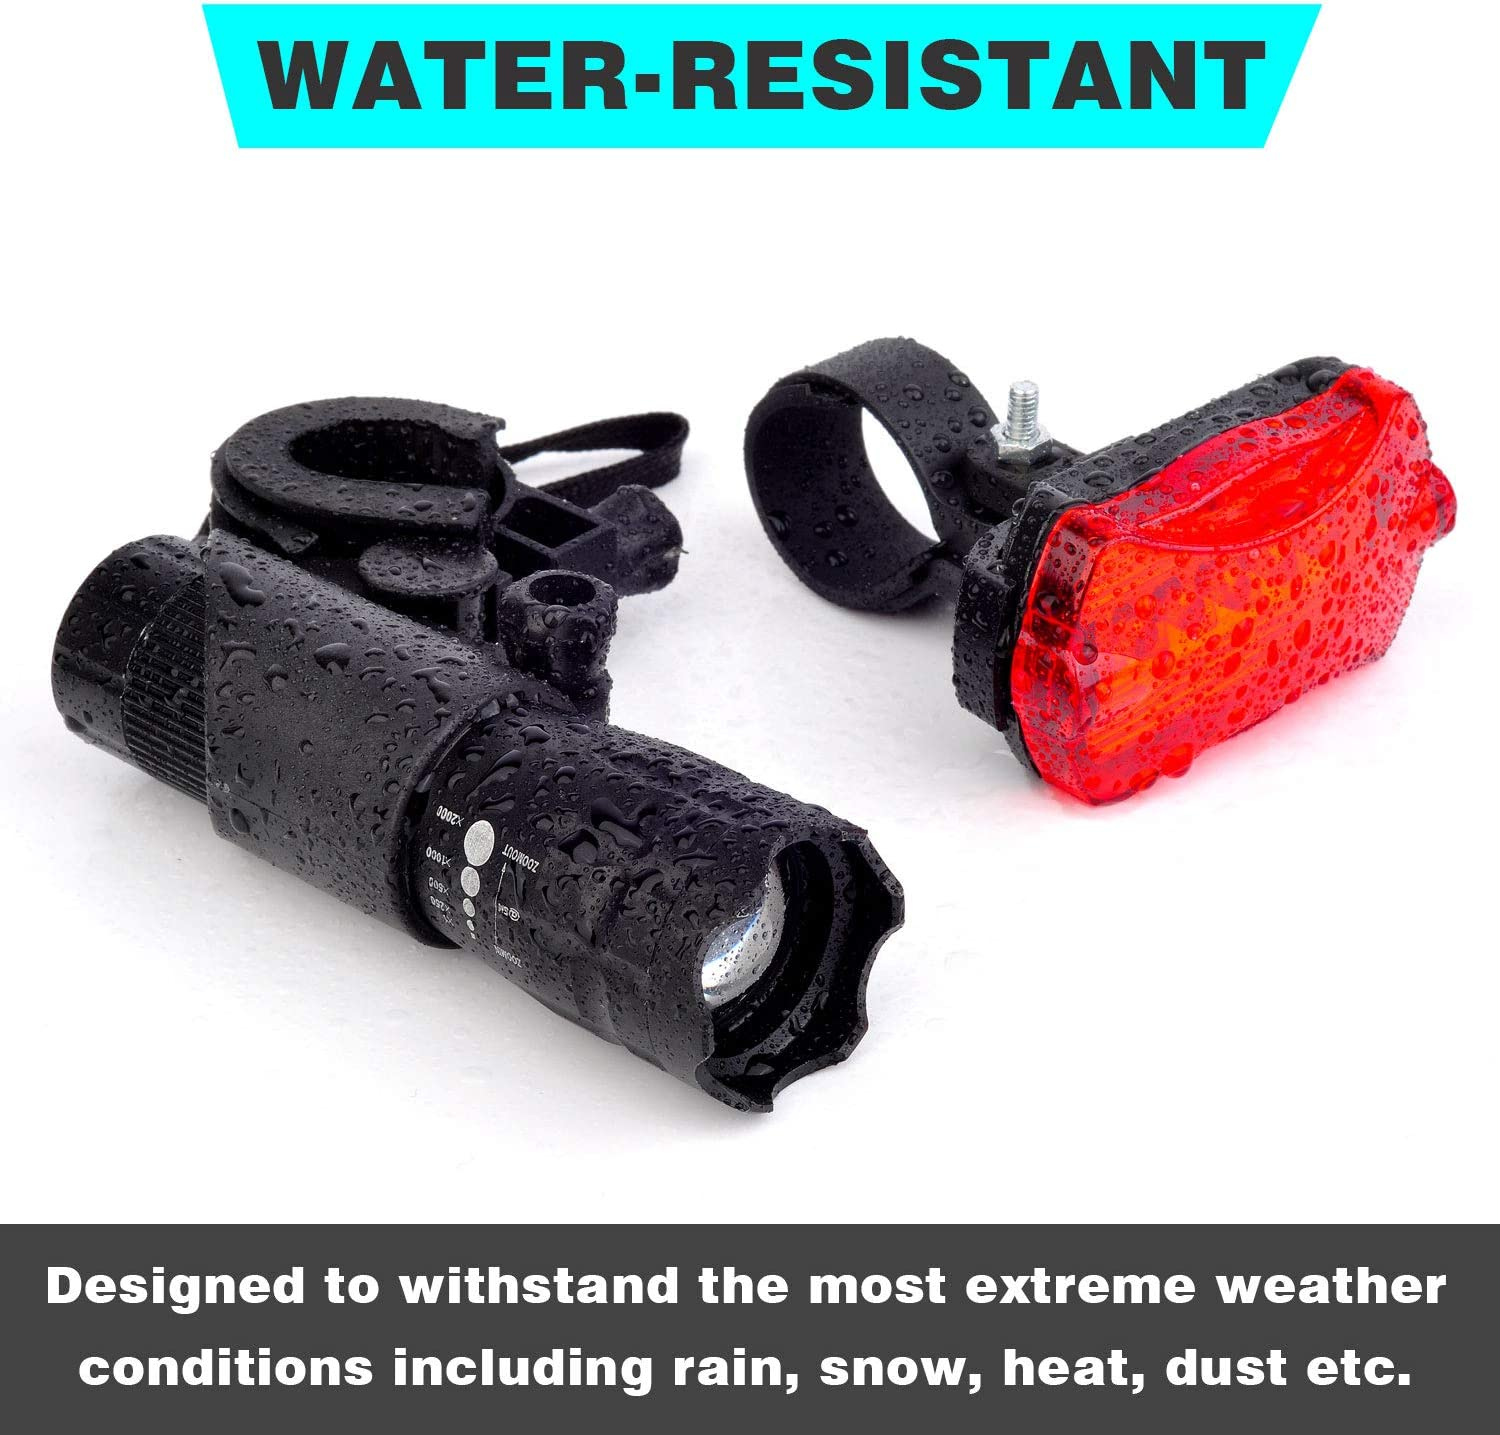 Super Bright Safe LED Lights for Bicycle Bike Headlight and Taillight Set Easy to Mount Bike Light Support AAA Batteries with Quick Release System